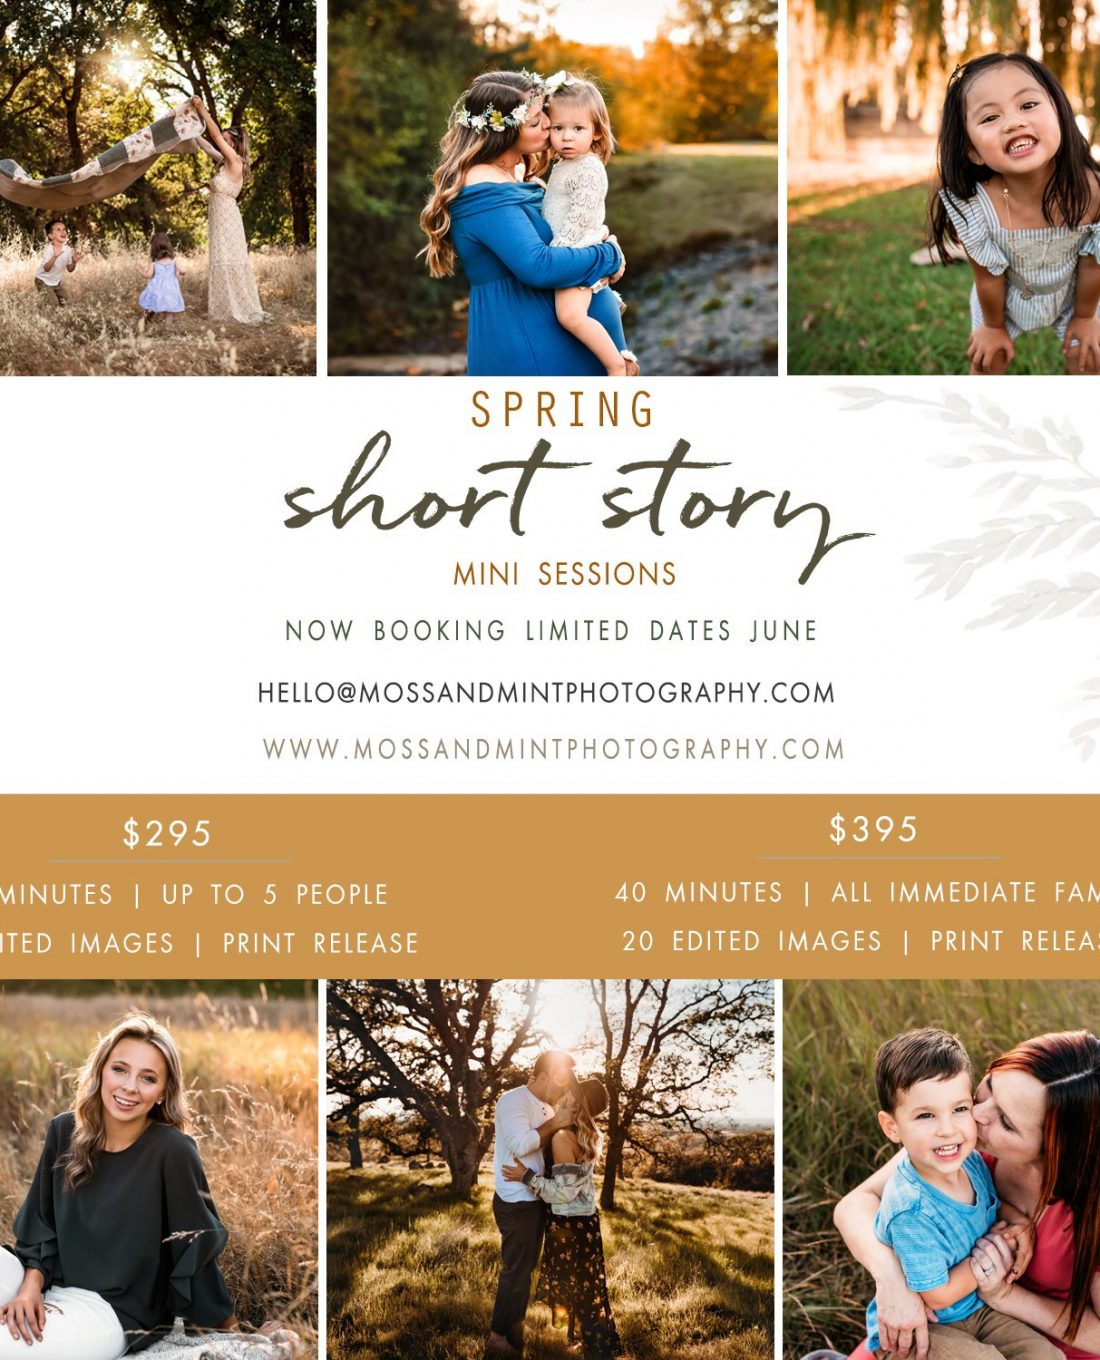 Spring 2020 mini sessions outdoor photos